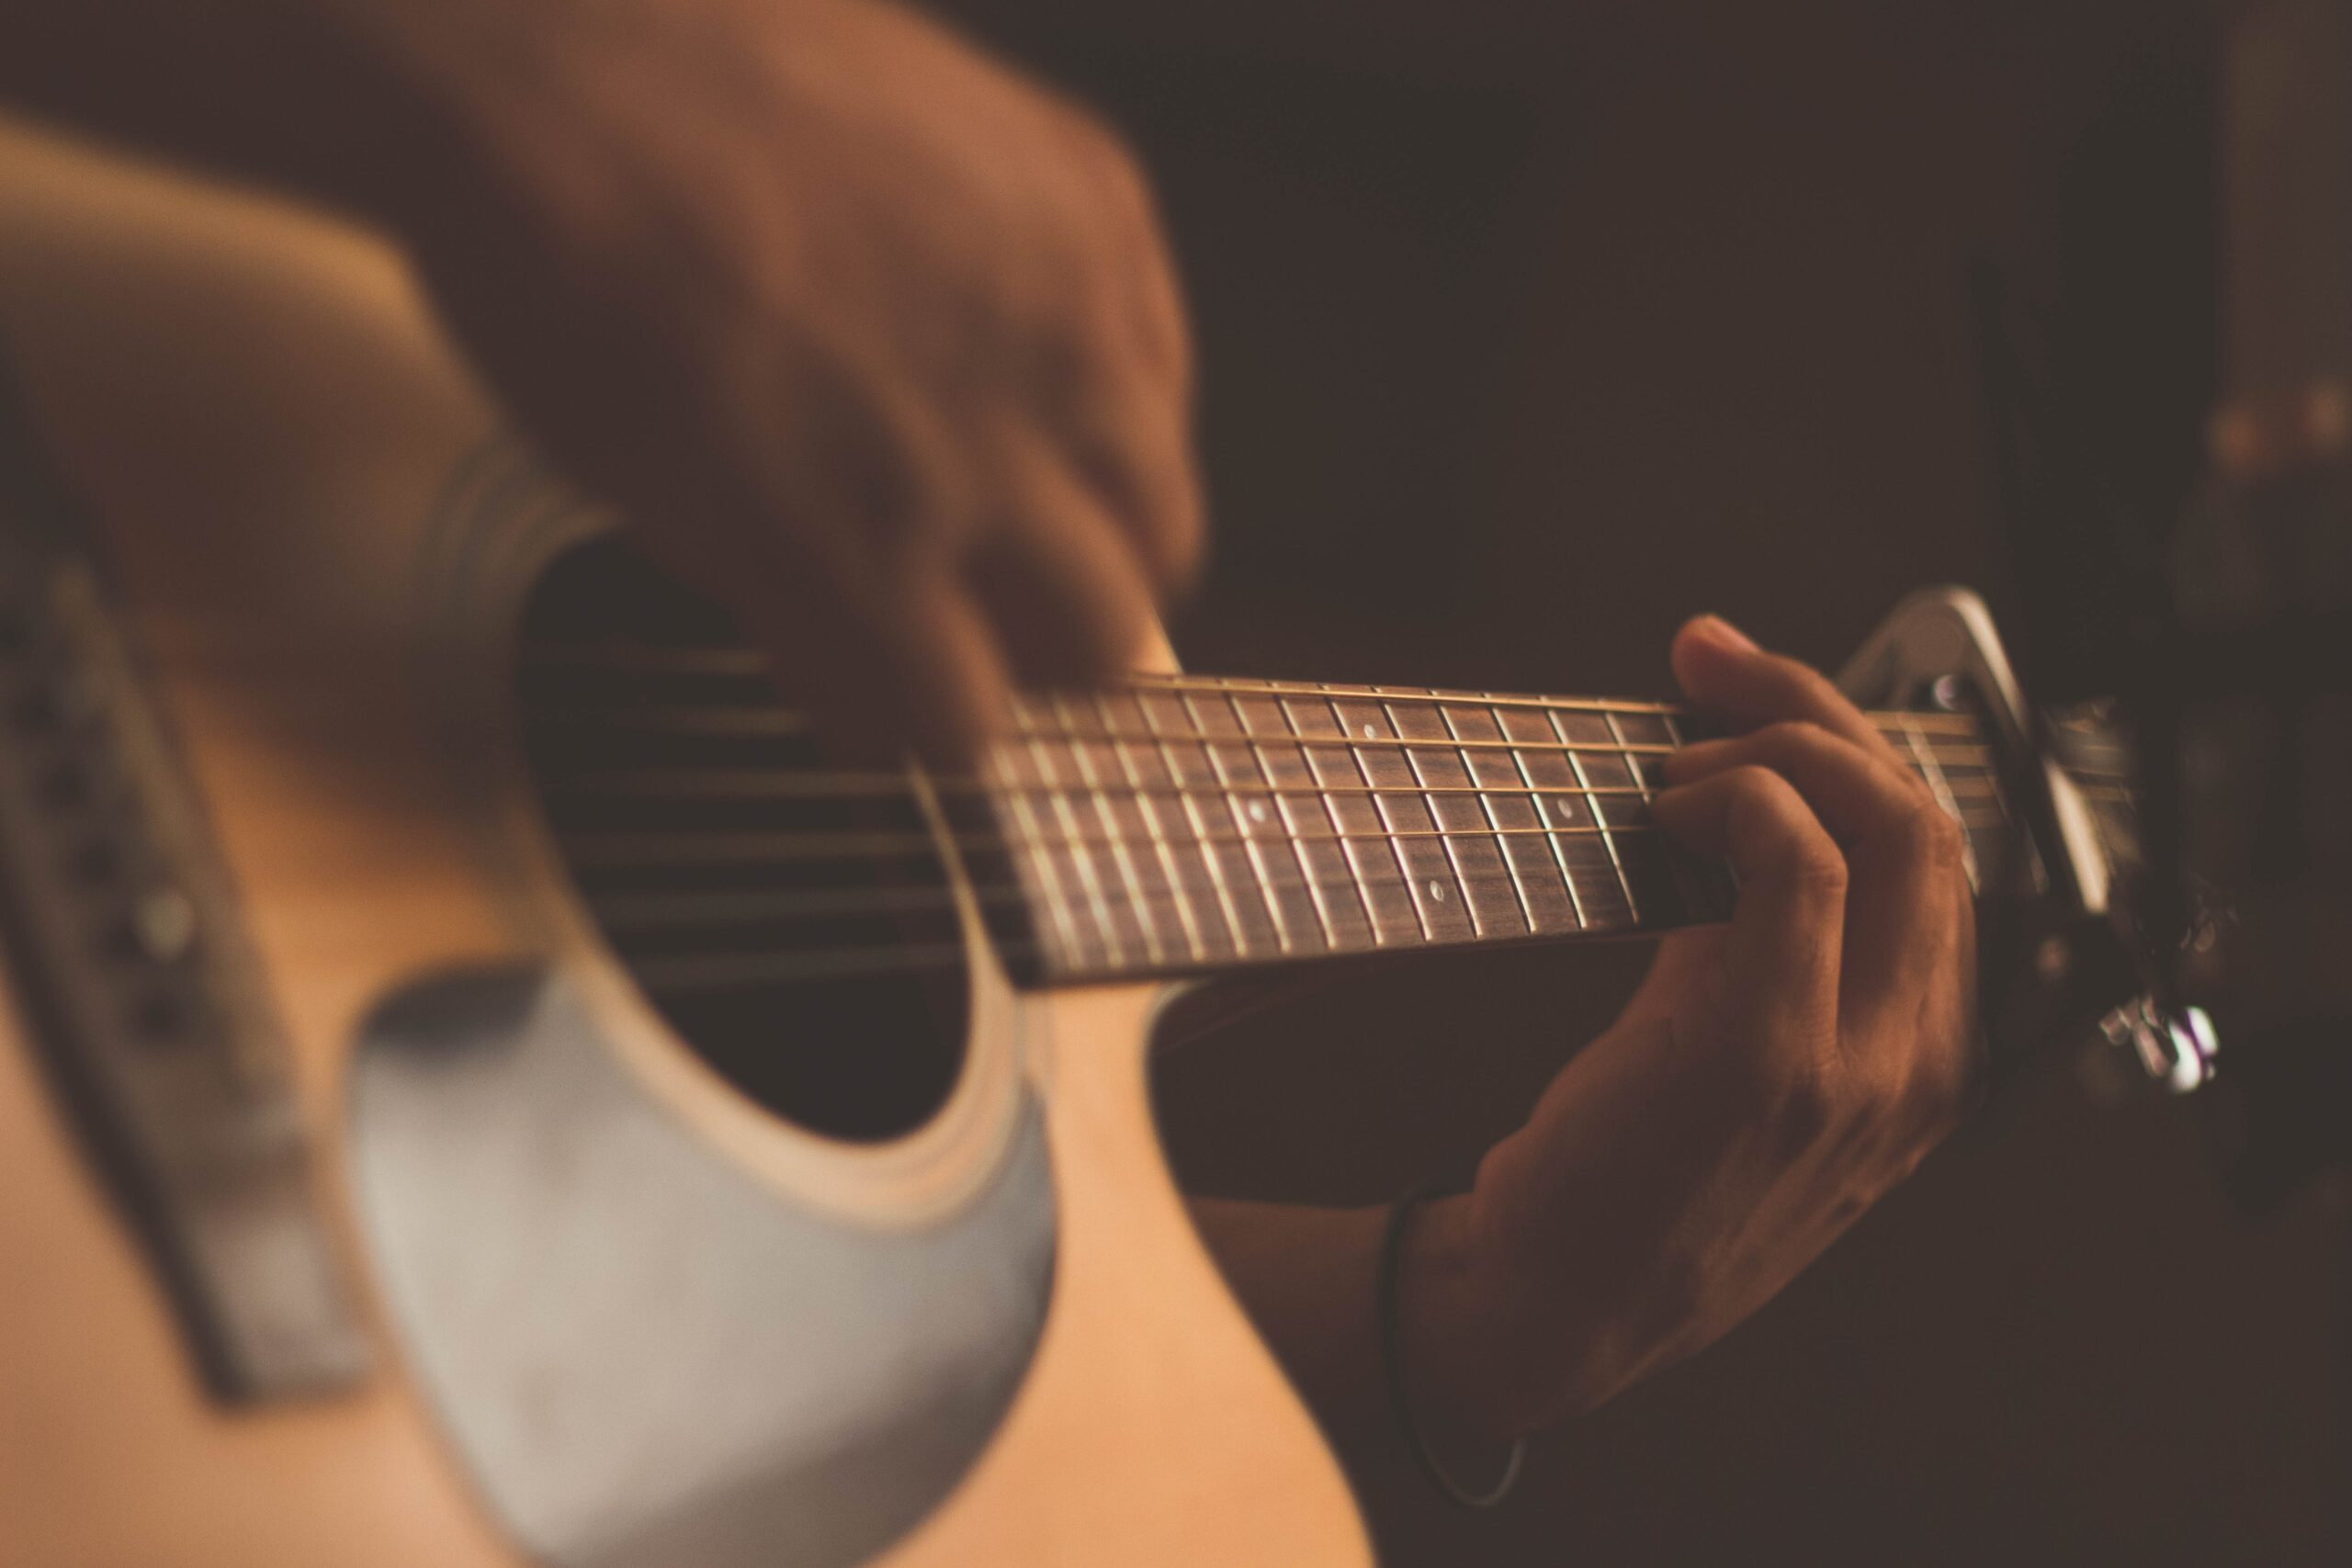 Who invented the guitar? The history of a great instrument. Man playing an acoustic guitar.